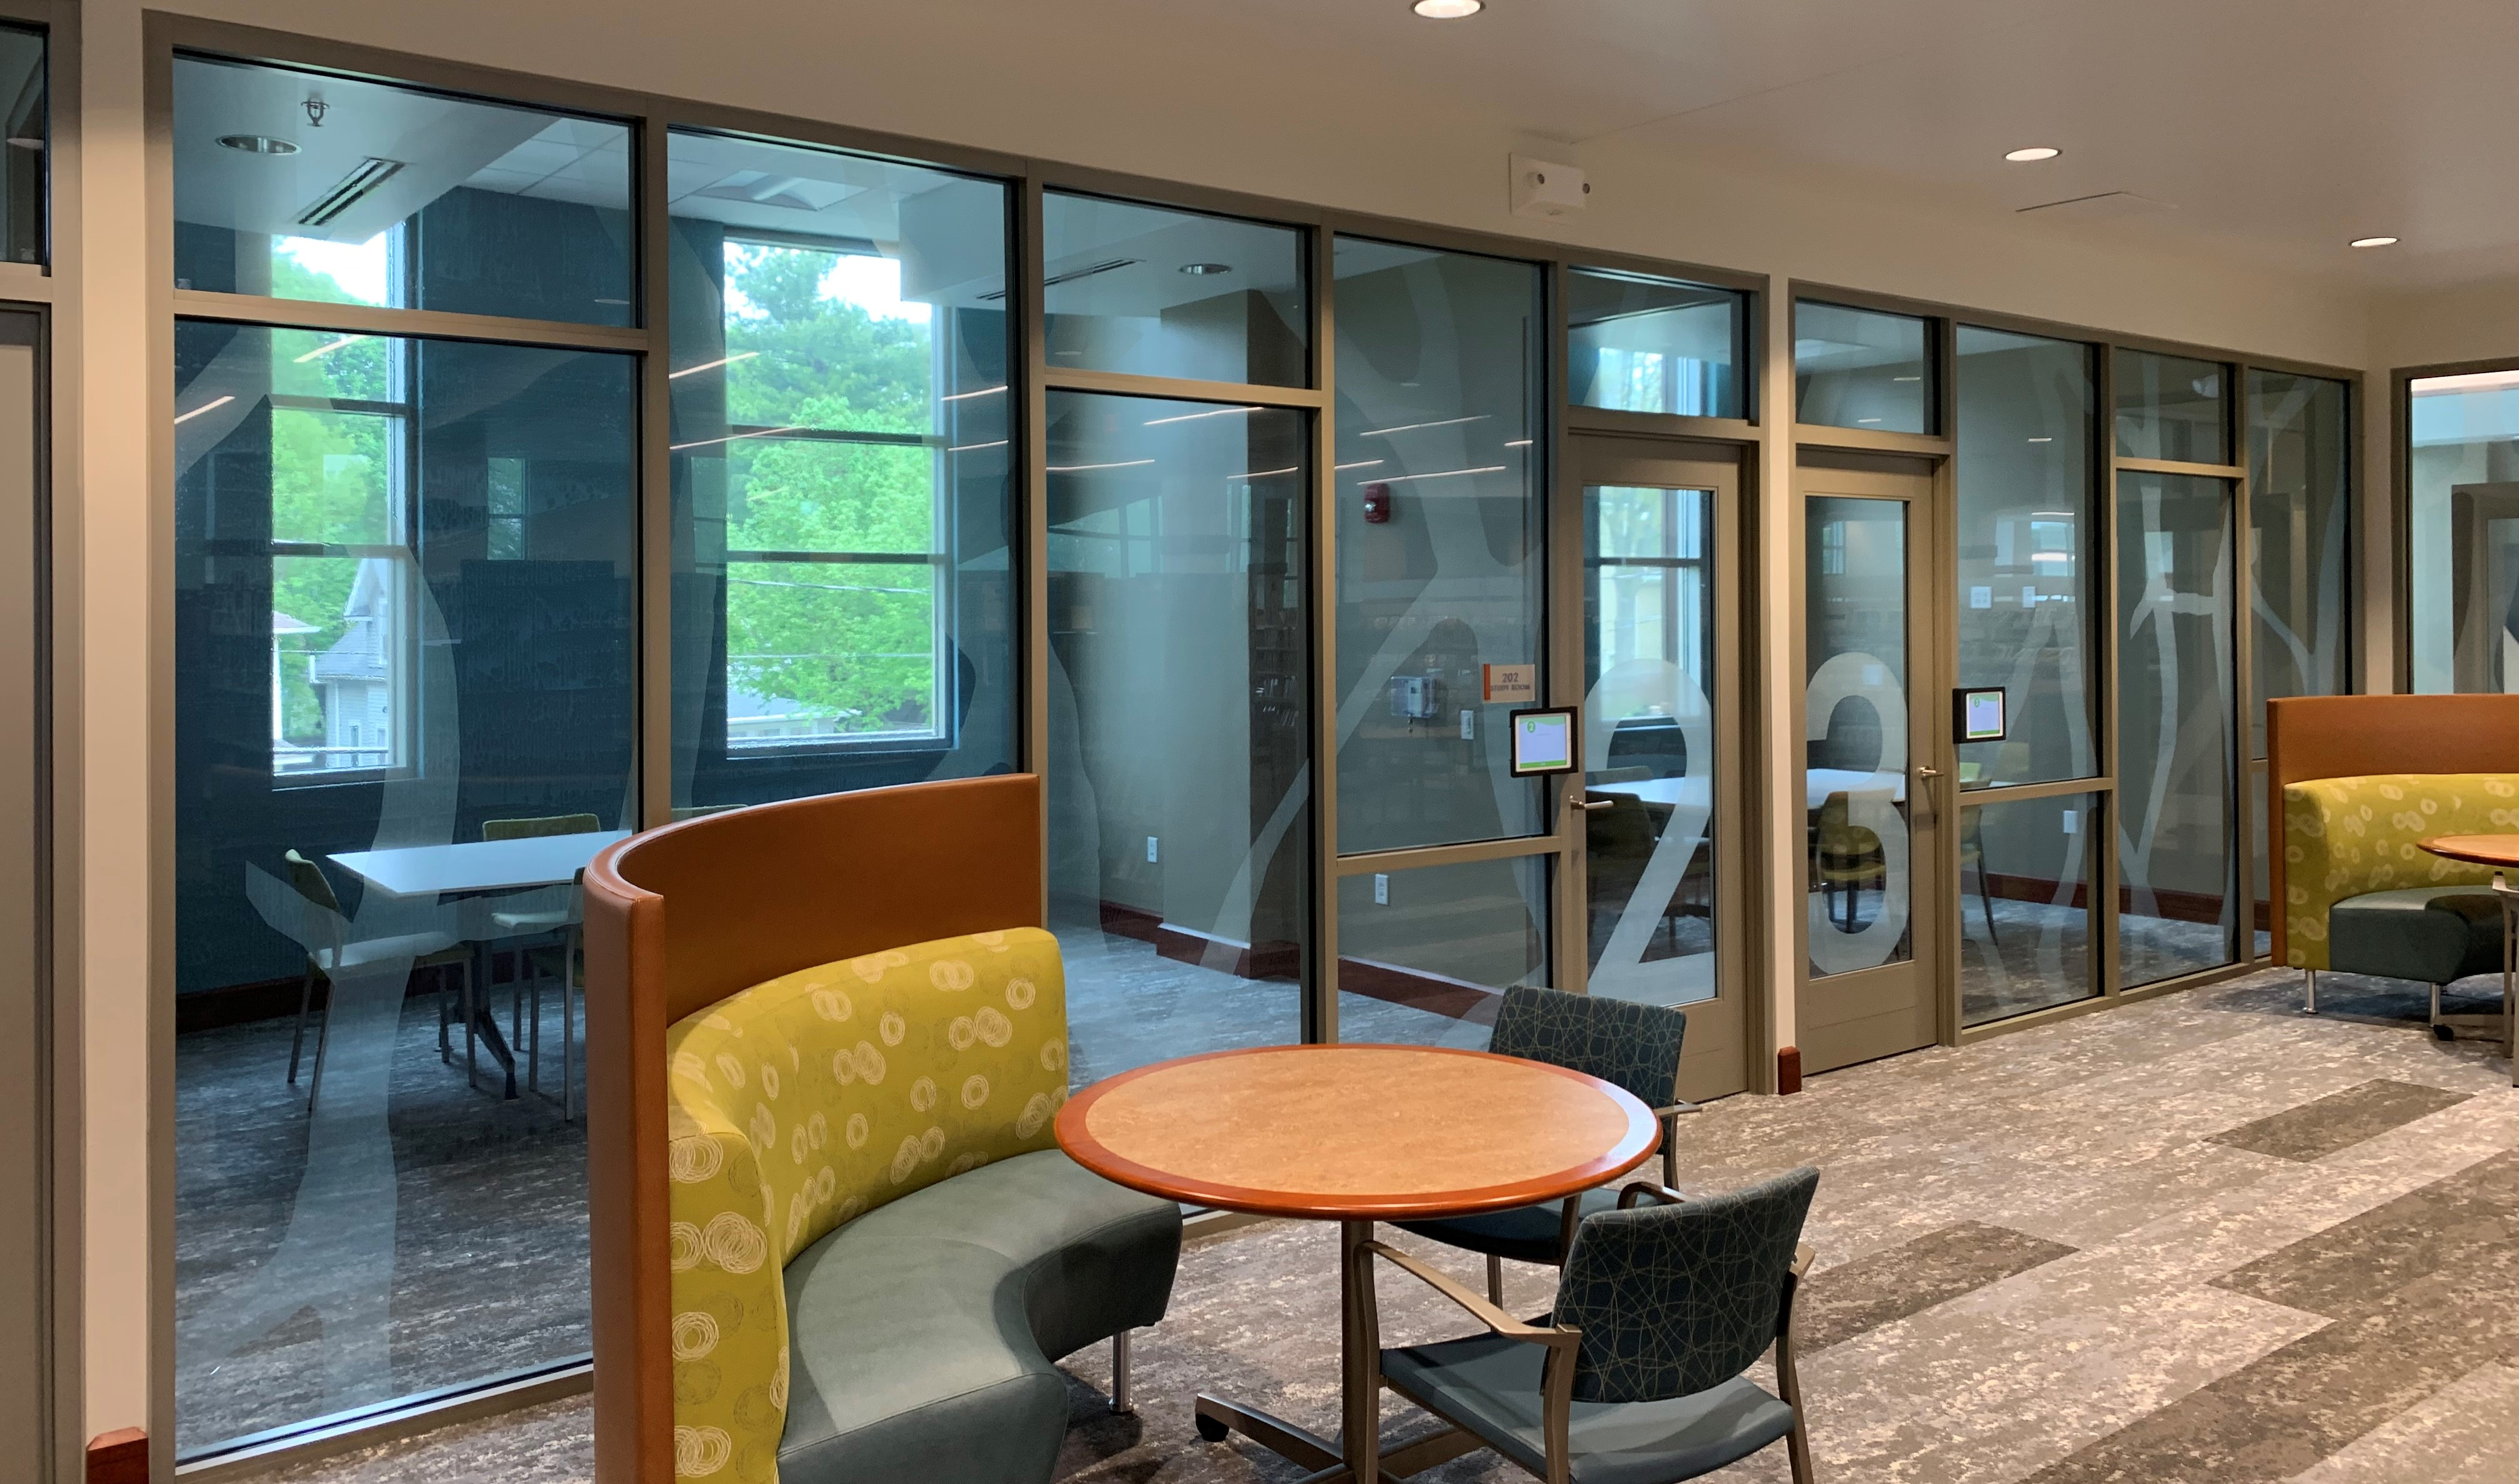 Window graphics in office space